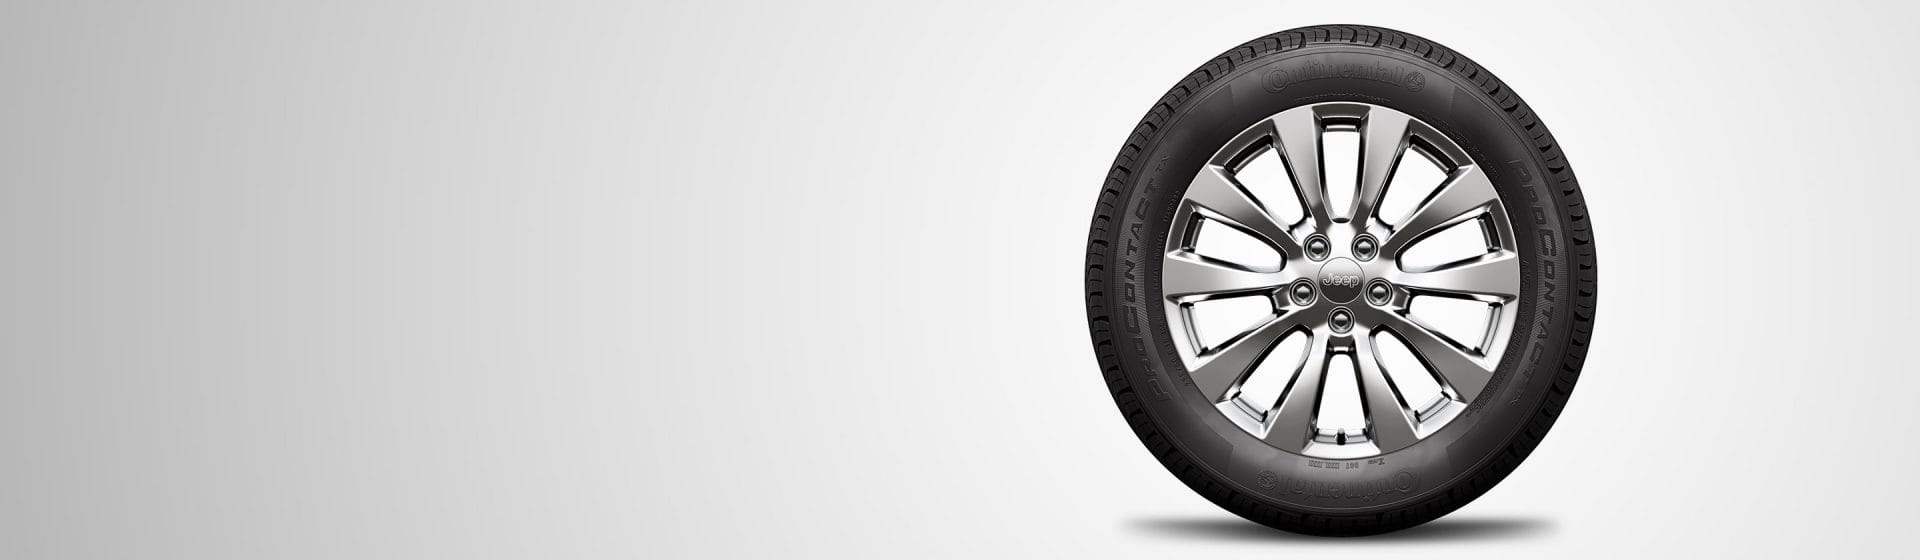 2018 Jeep Cherokee Tires